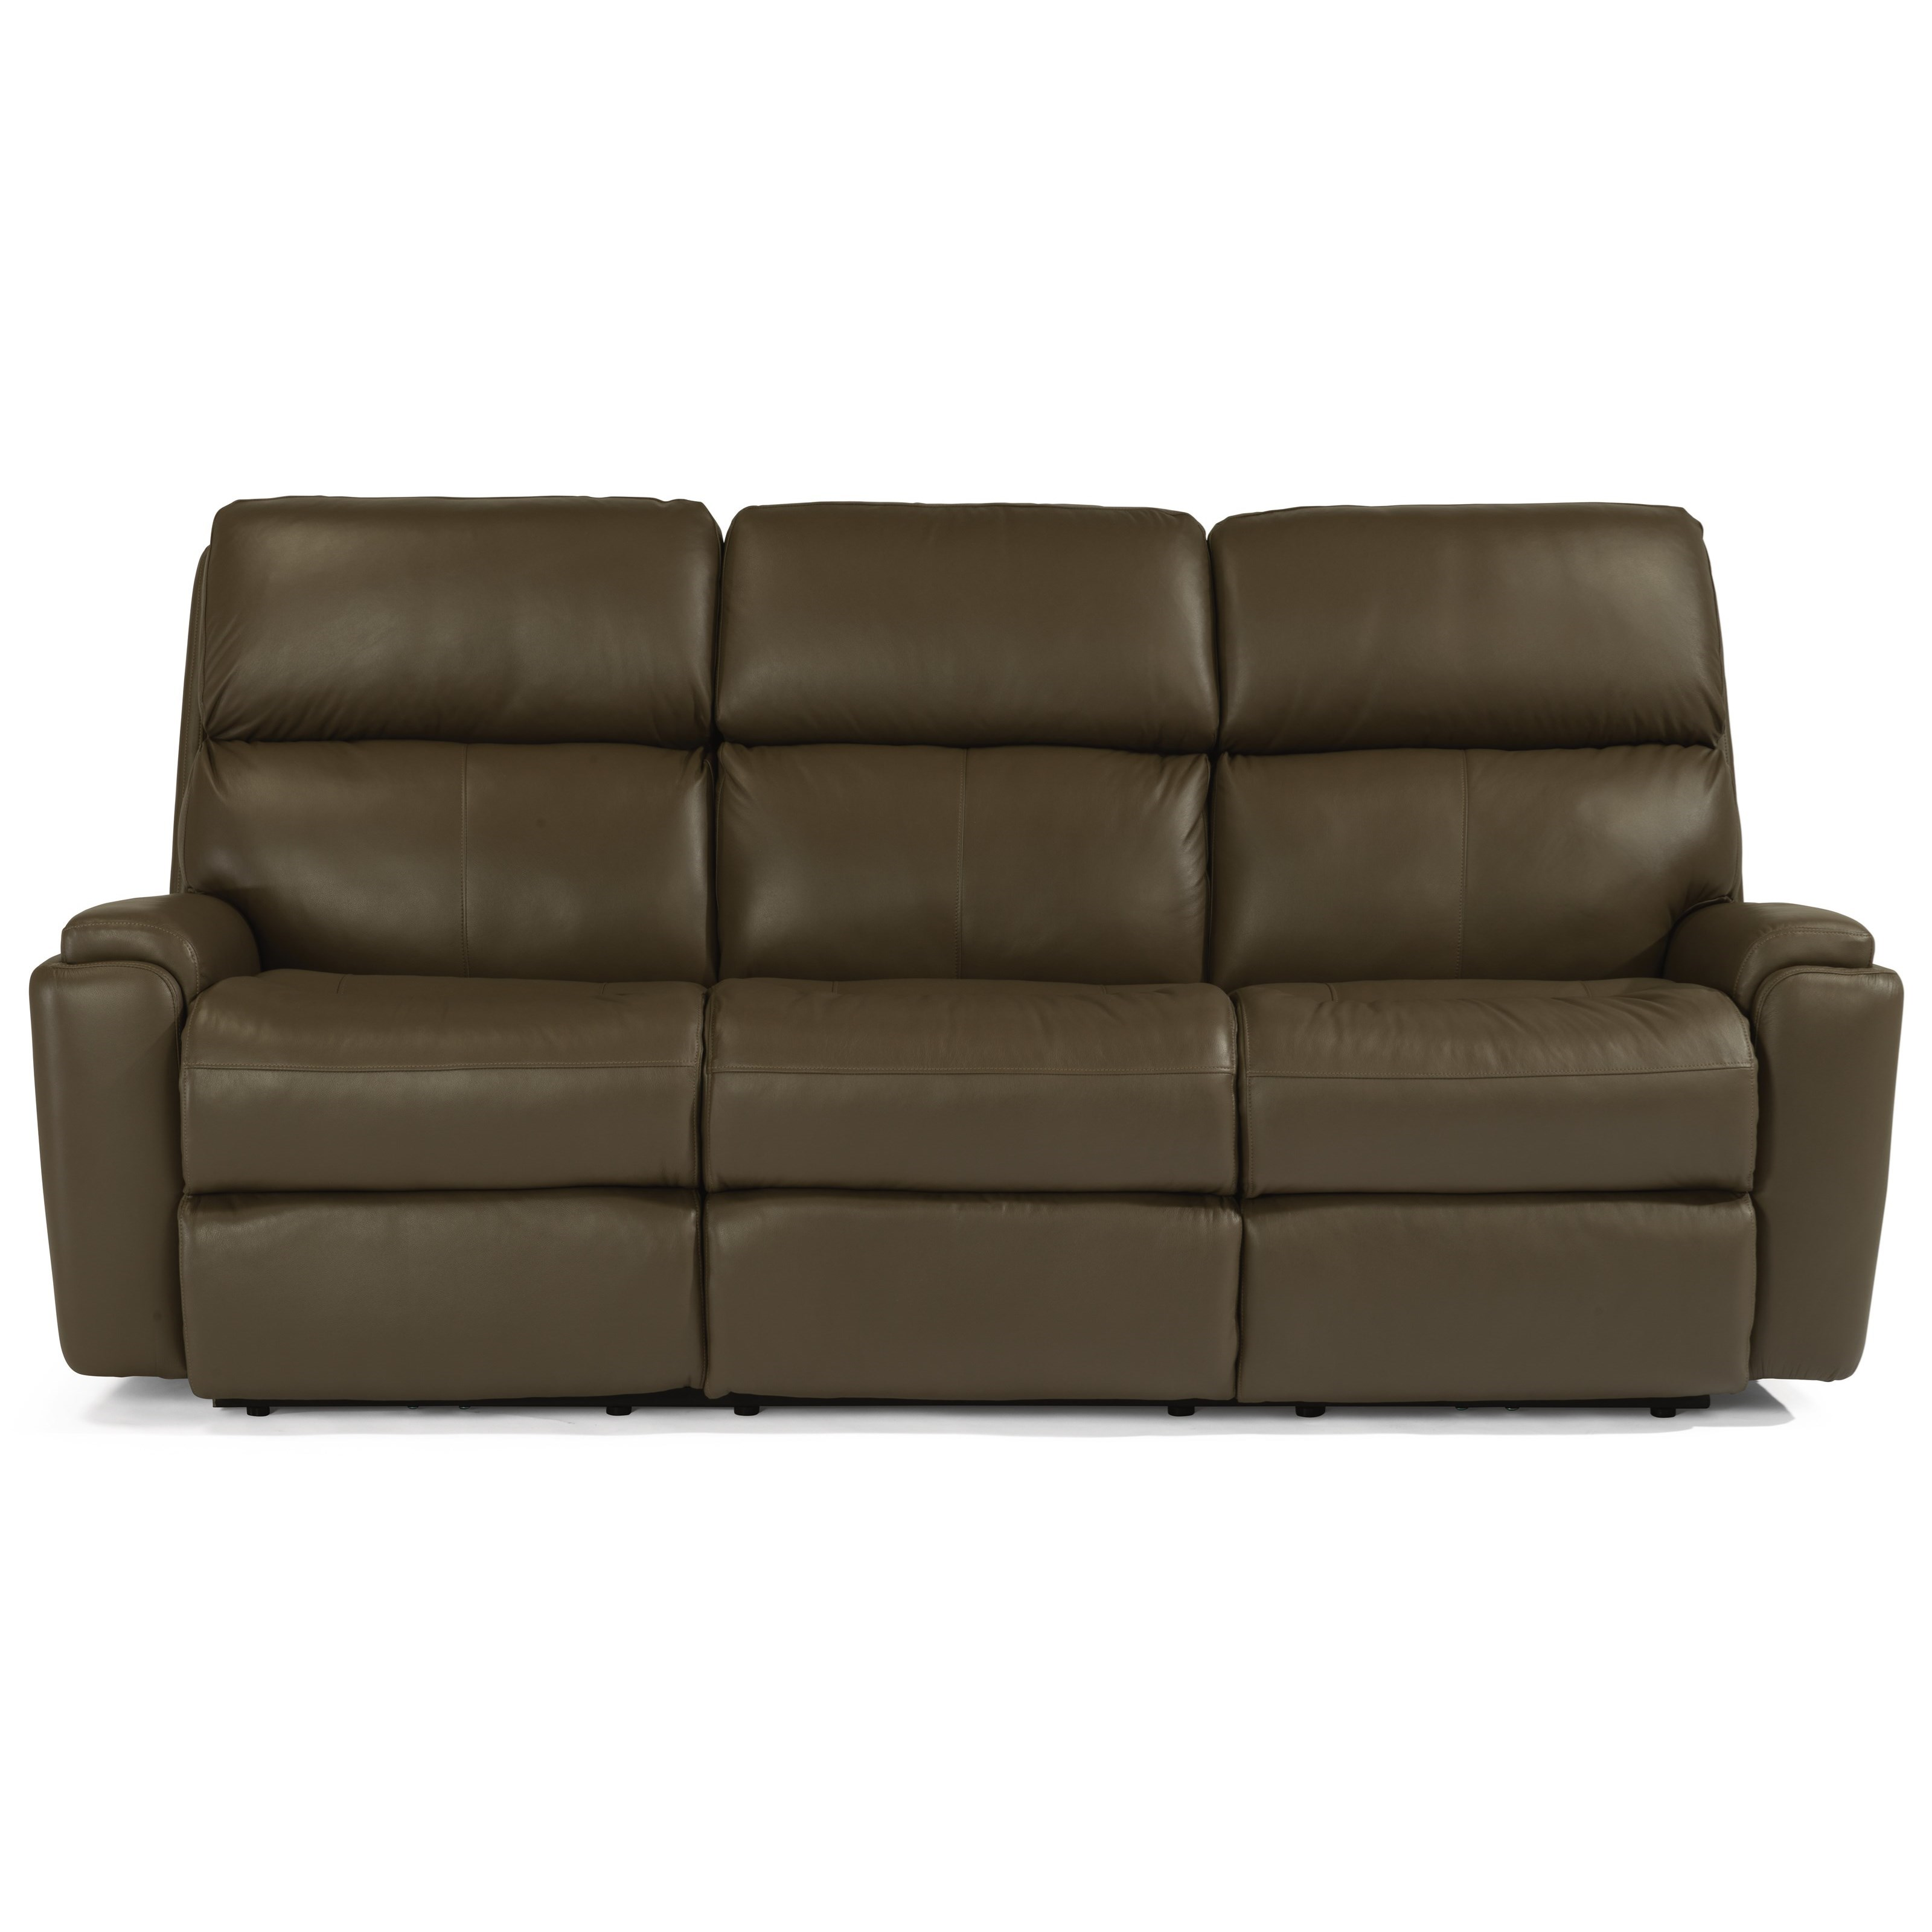 Flexsteel Sofa Bed Mattress: Flexsteel Rio Casual Power Reclining Sofa With Power